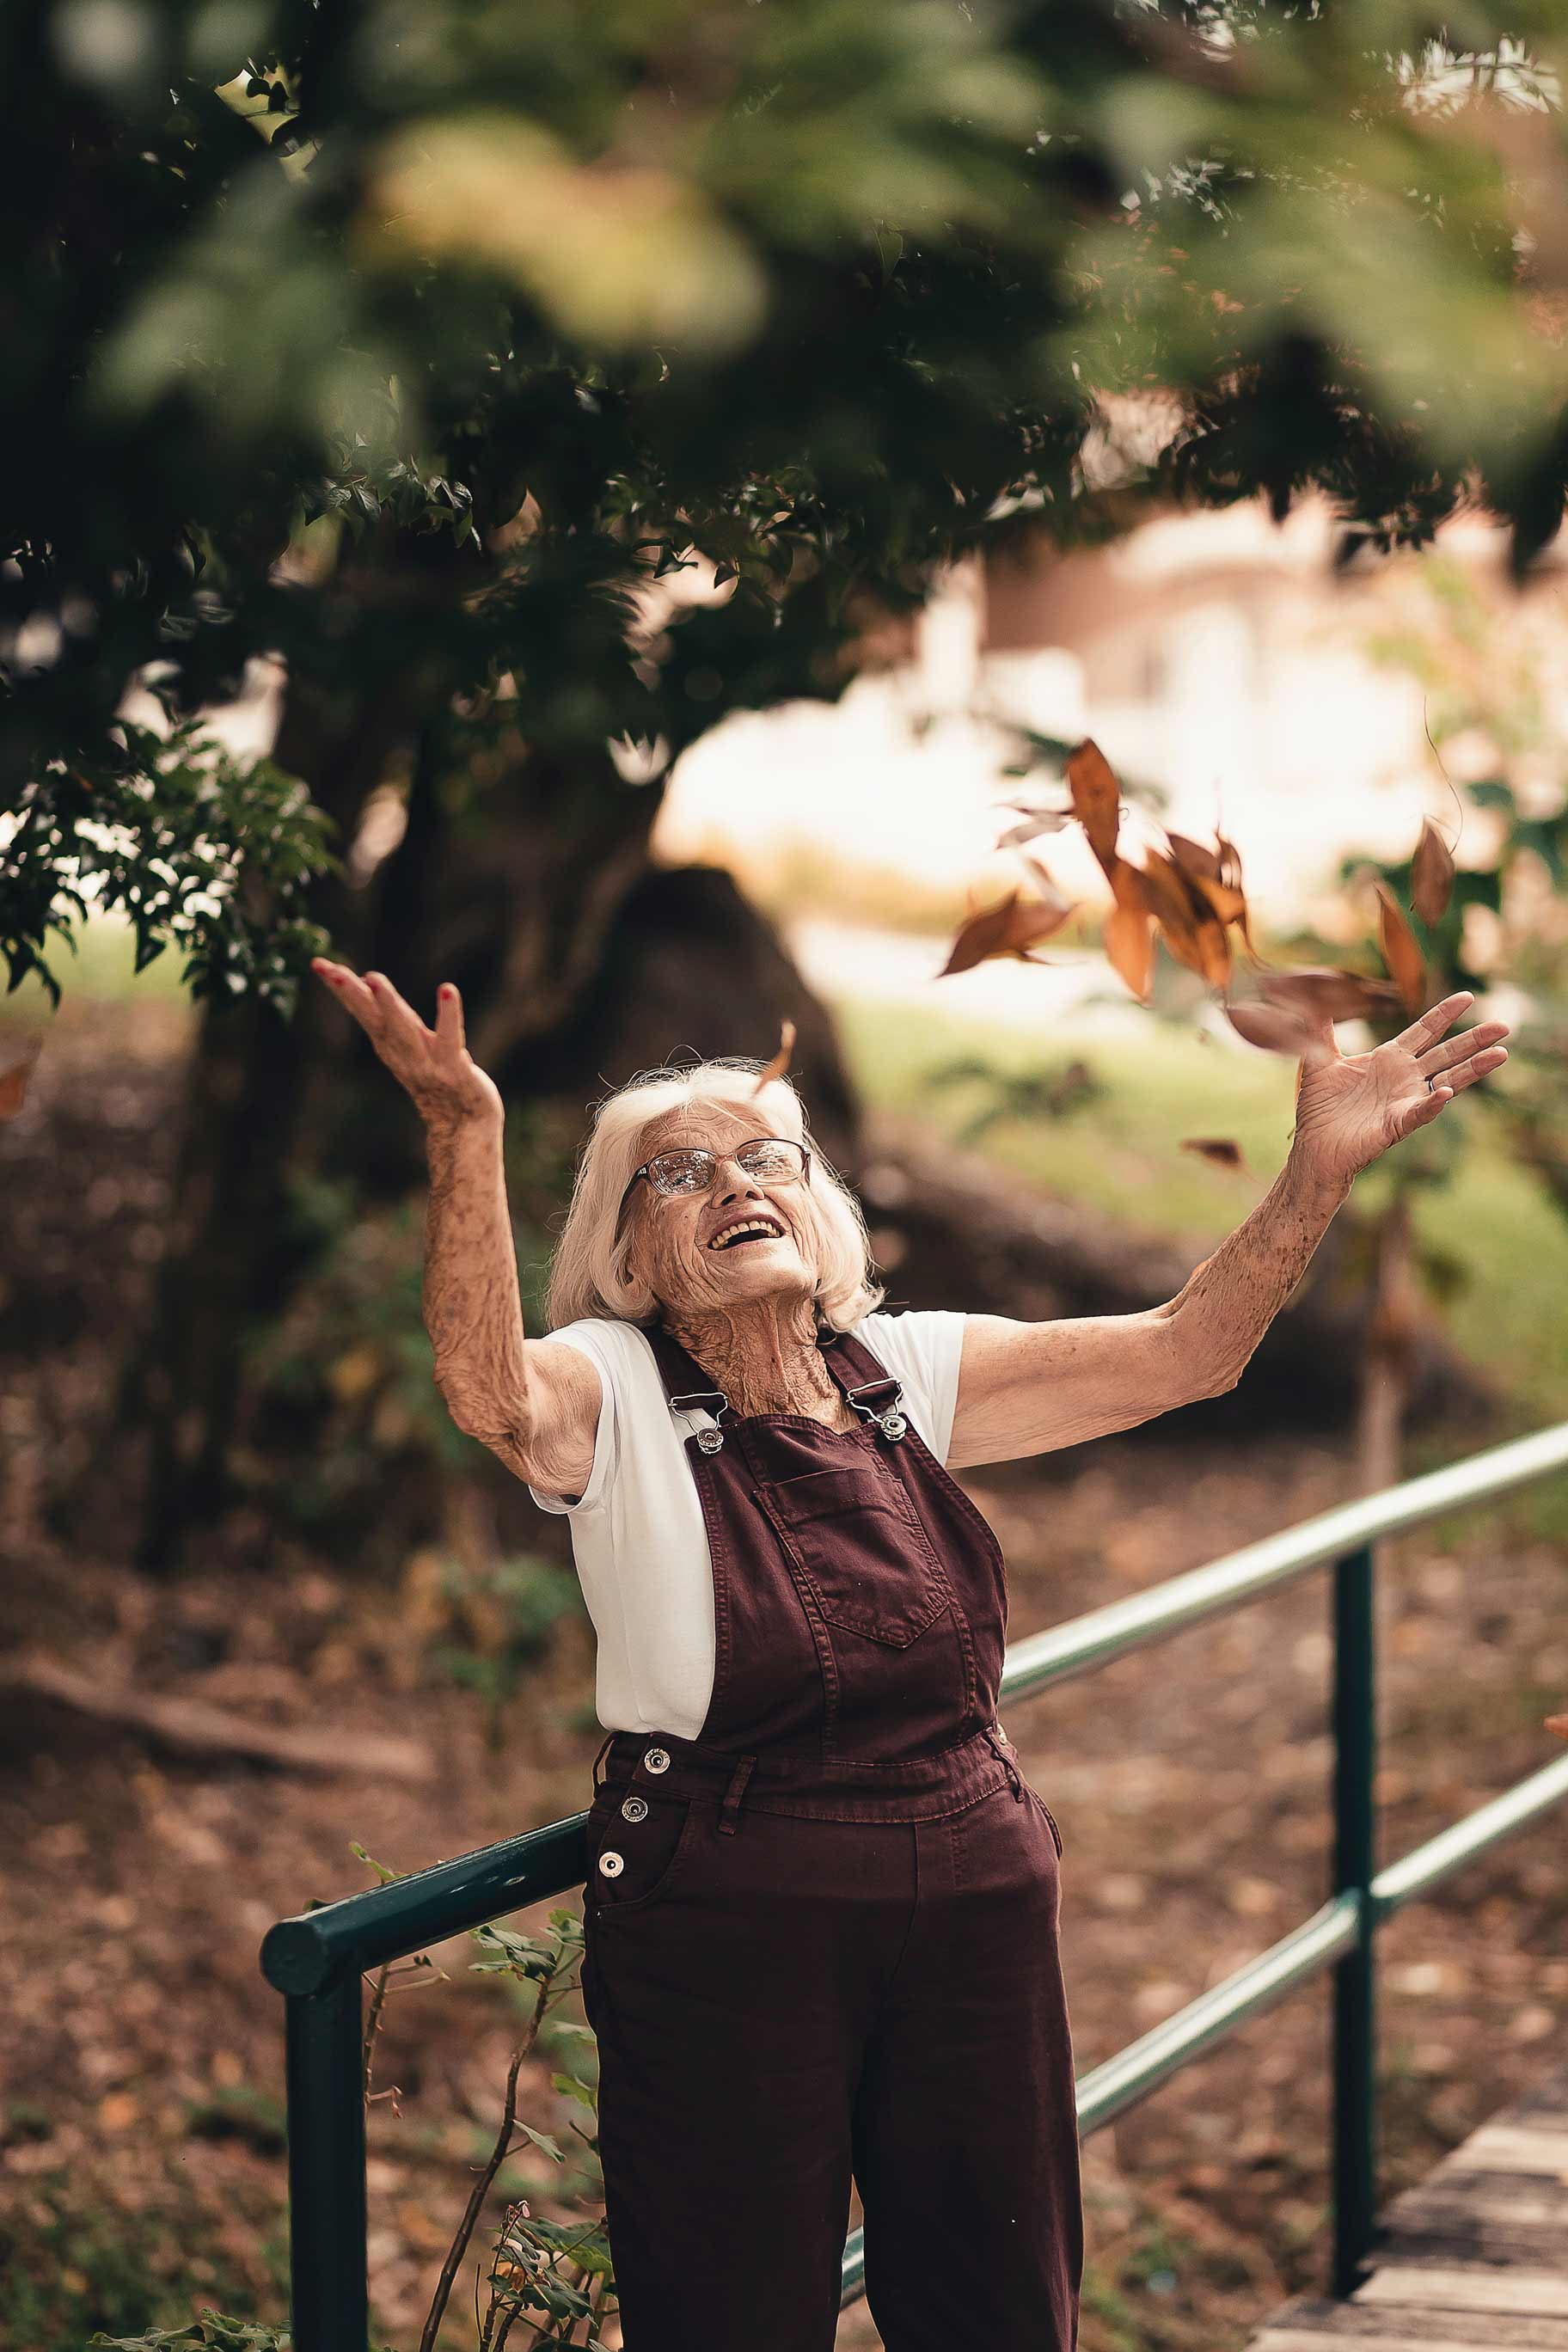 Elderly lady smiling and throwing leaves into the air